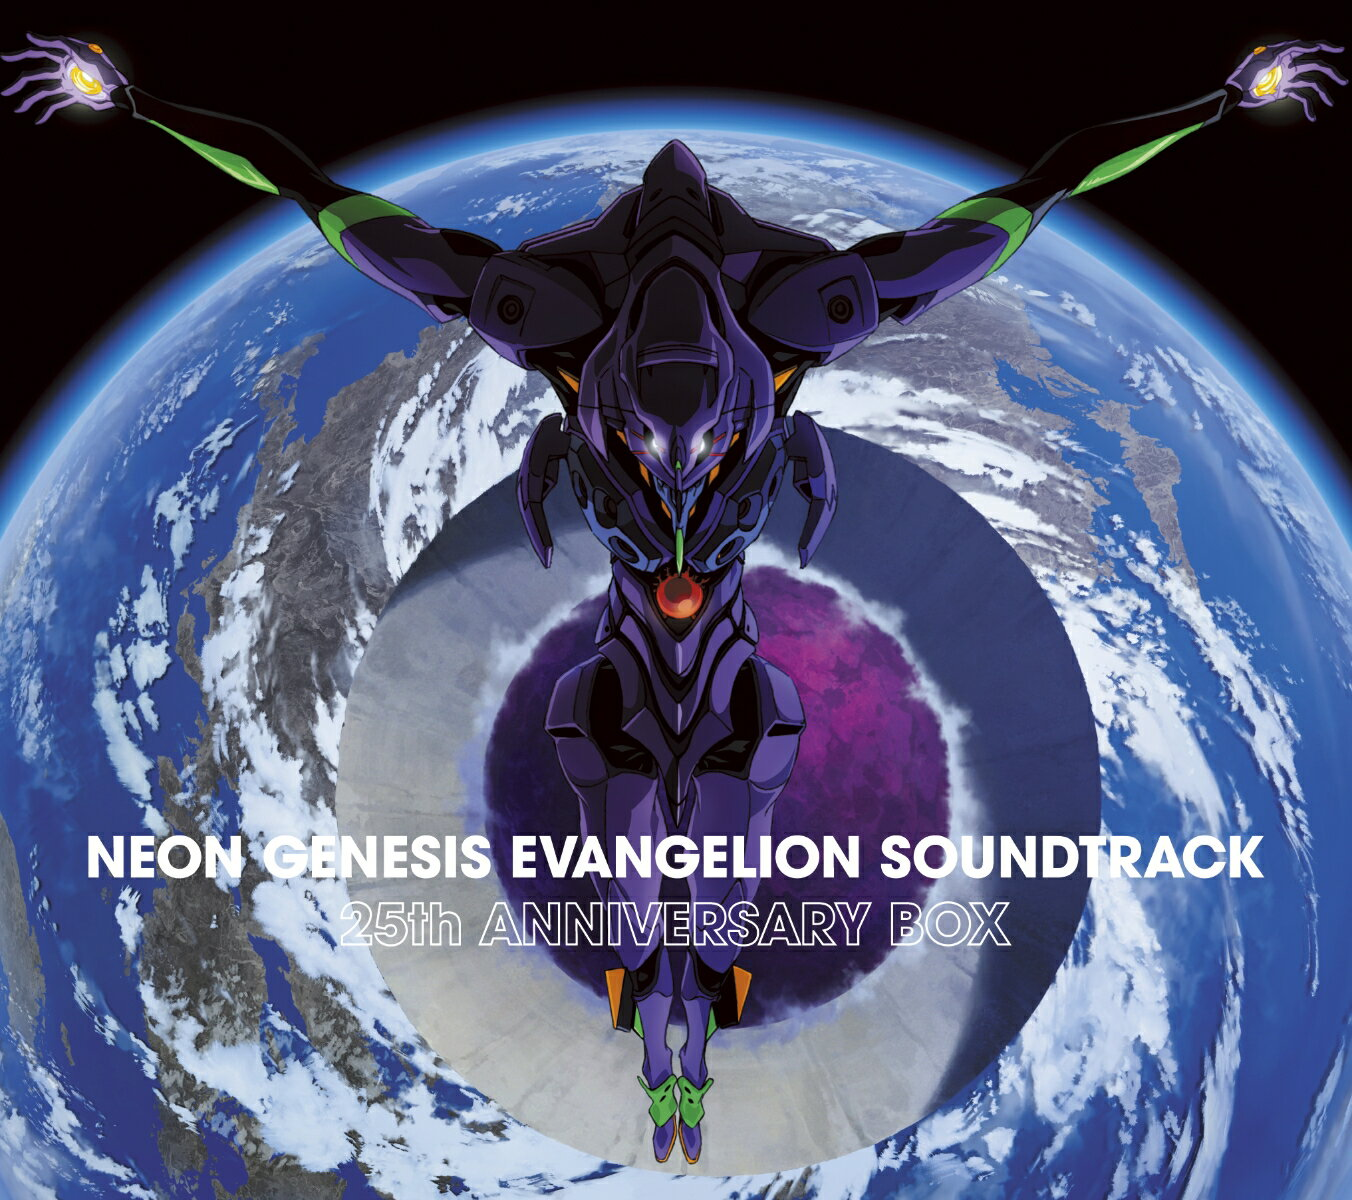 アニメソング, その他 NEON GENESIS EVANGELION SOUNDTRACK 25th ANNIVERSARY BOX (5CD) () ()